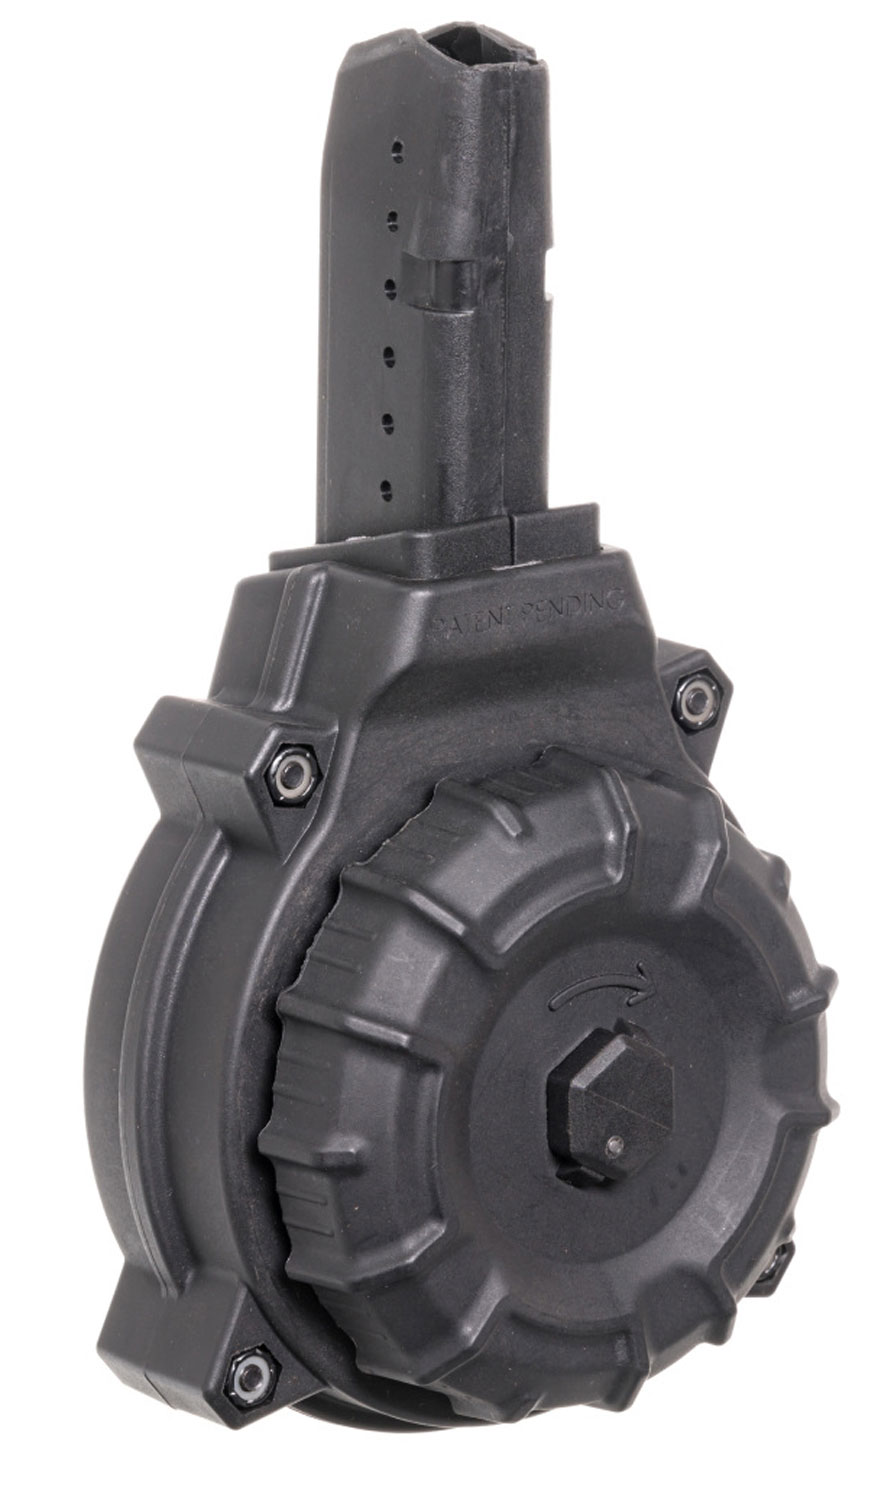 ProMag DRMA12 OEM  9mm Luger AR-15 with Glock Style Mag 50rd Black Drum